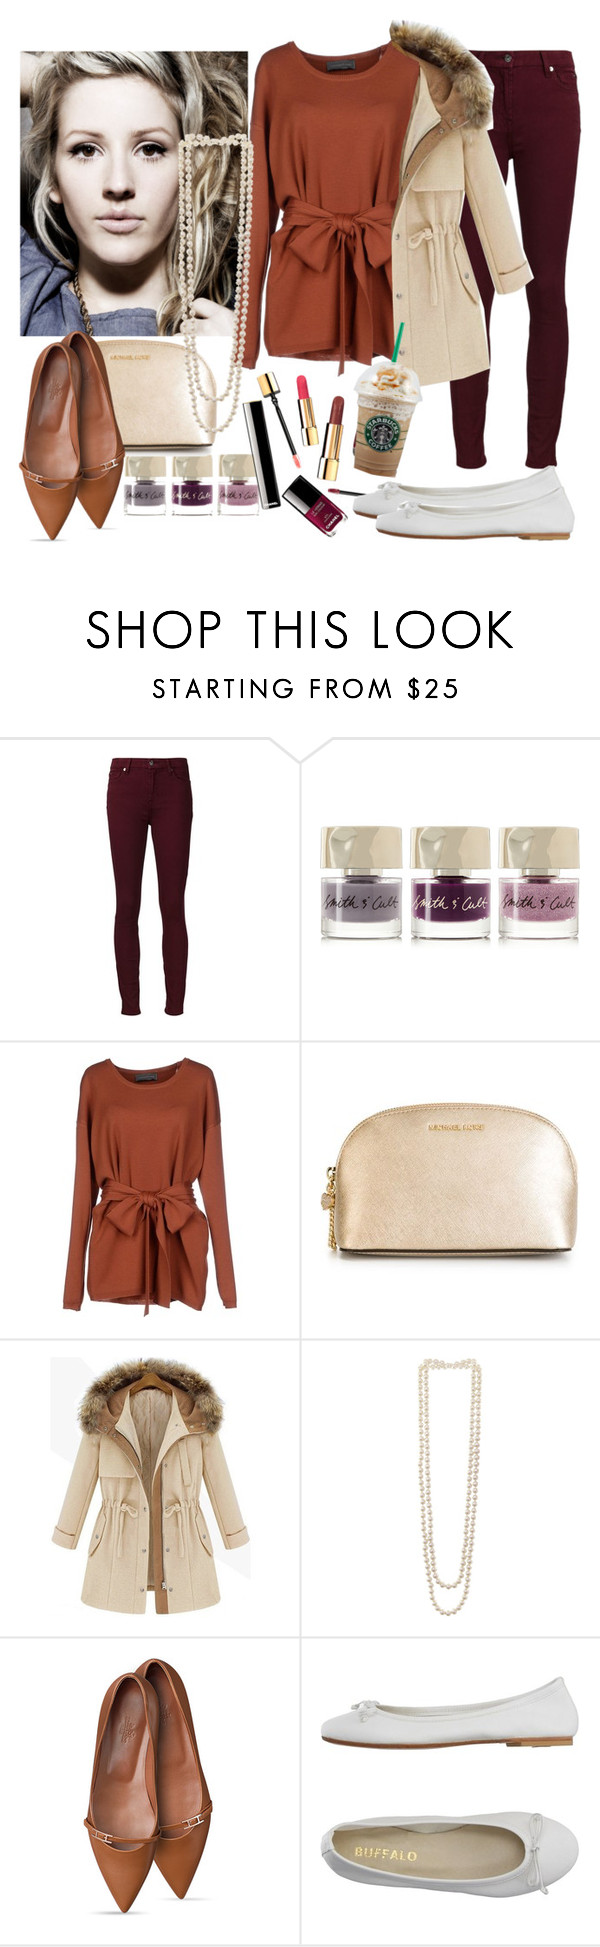 """Winter"" by tricialisha ❤ liked on Polyvore featuring 7 For All Mankind, Smith & Cult, Lemaire, MICHAEL Michael Kors, Kenneth Jay Lane, DIENNEG, women's clothing, women, female and woman"